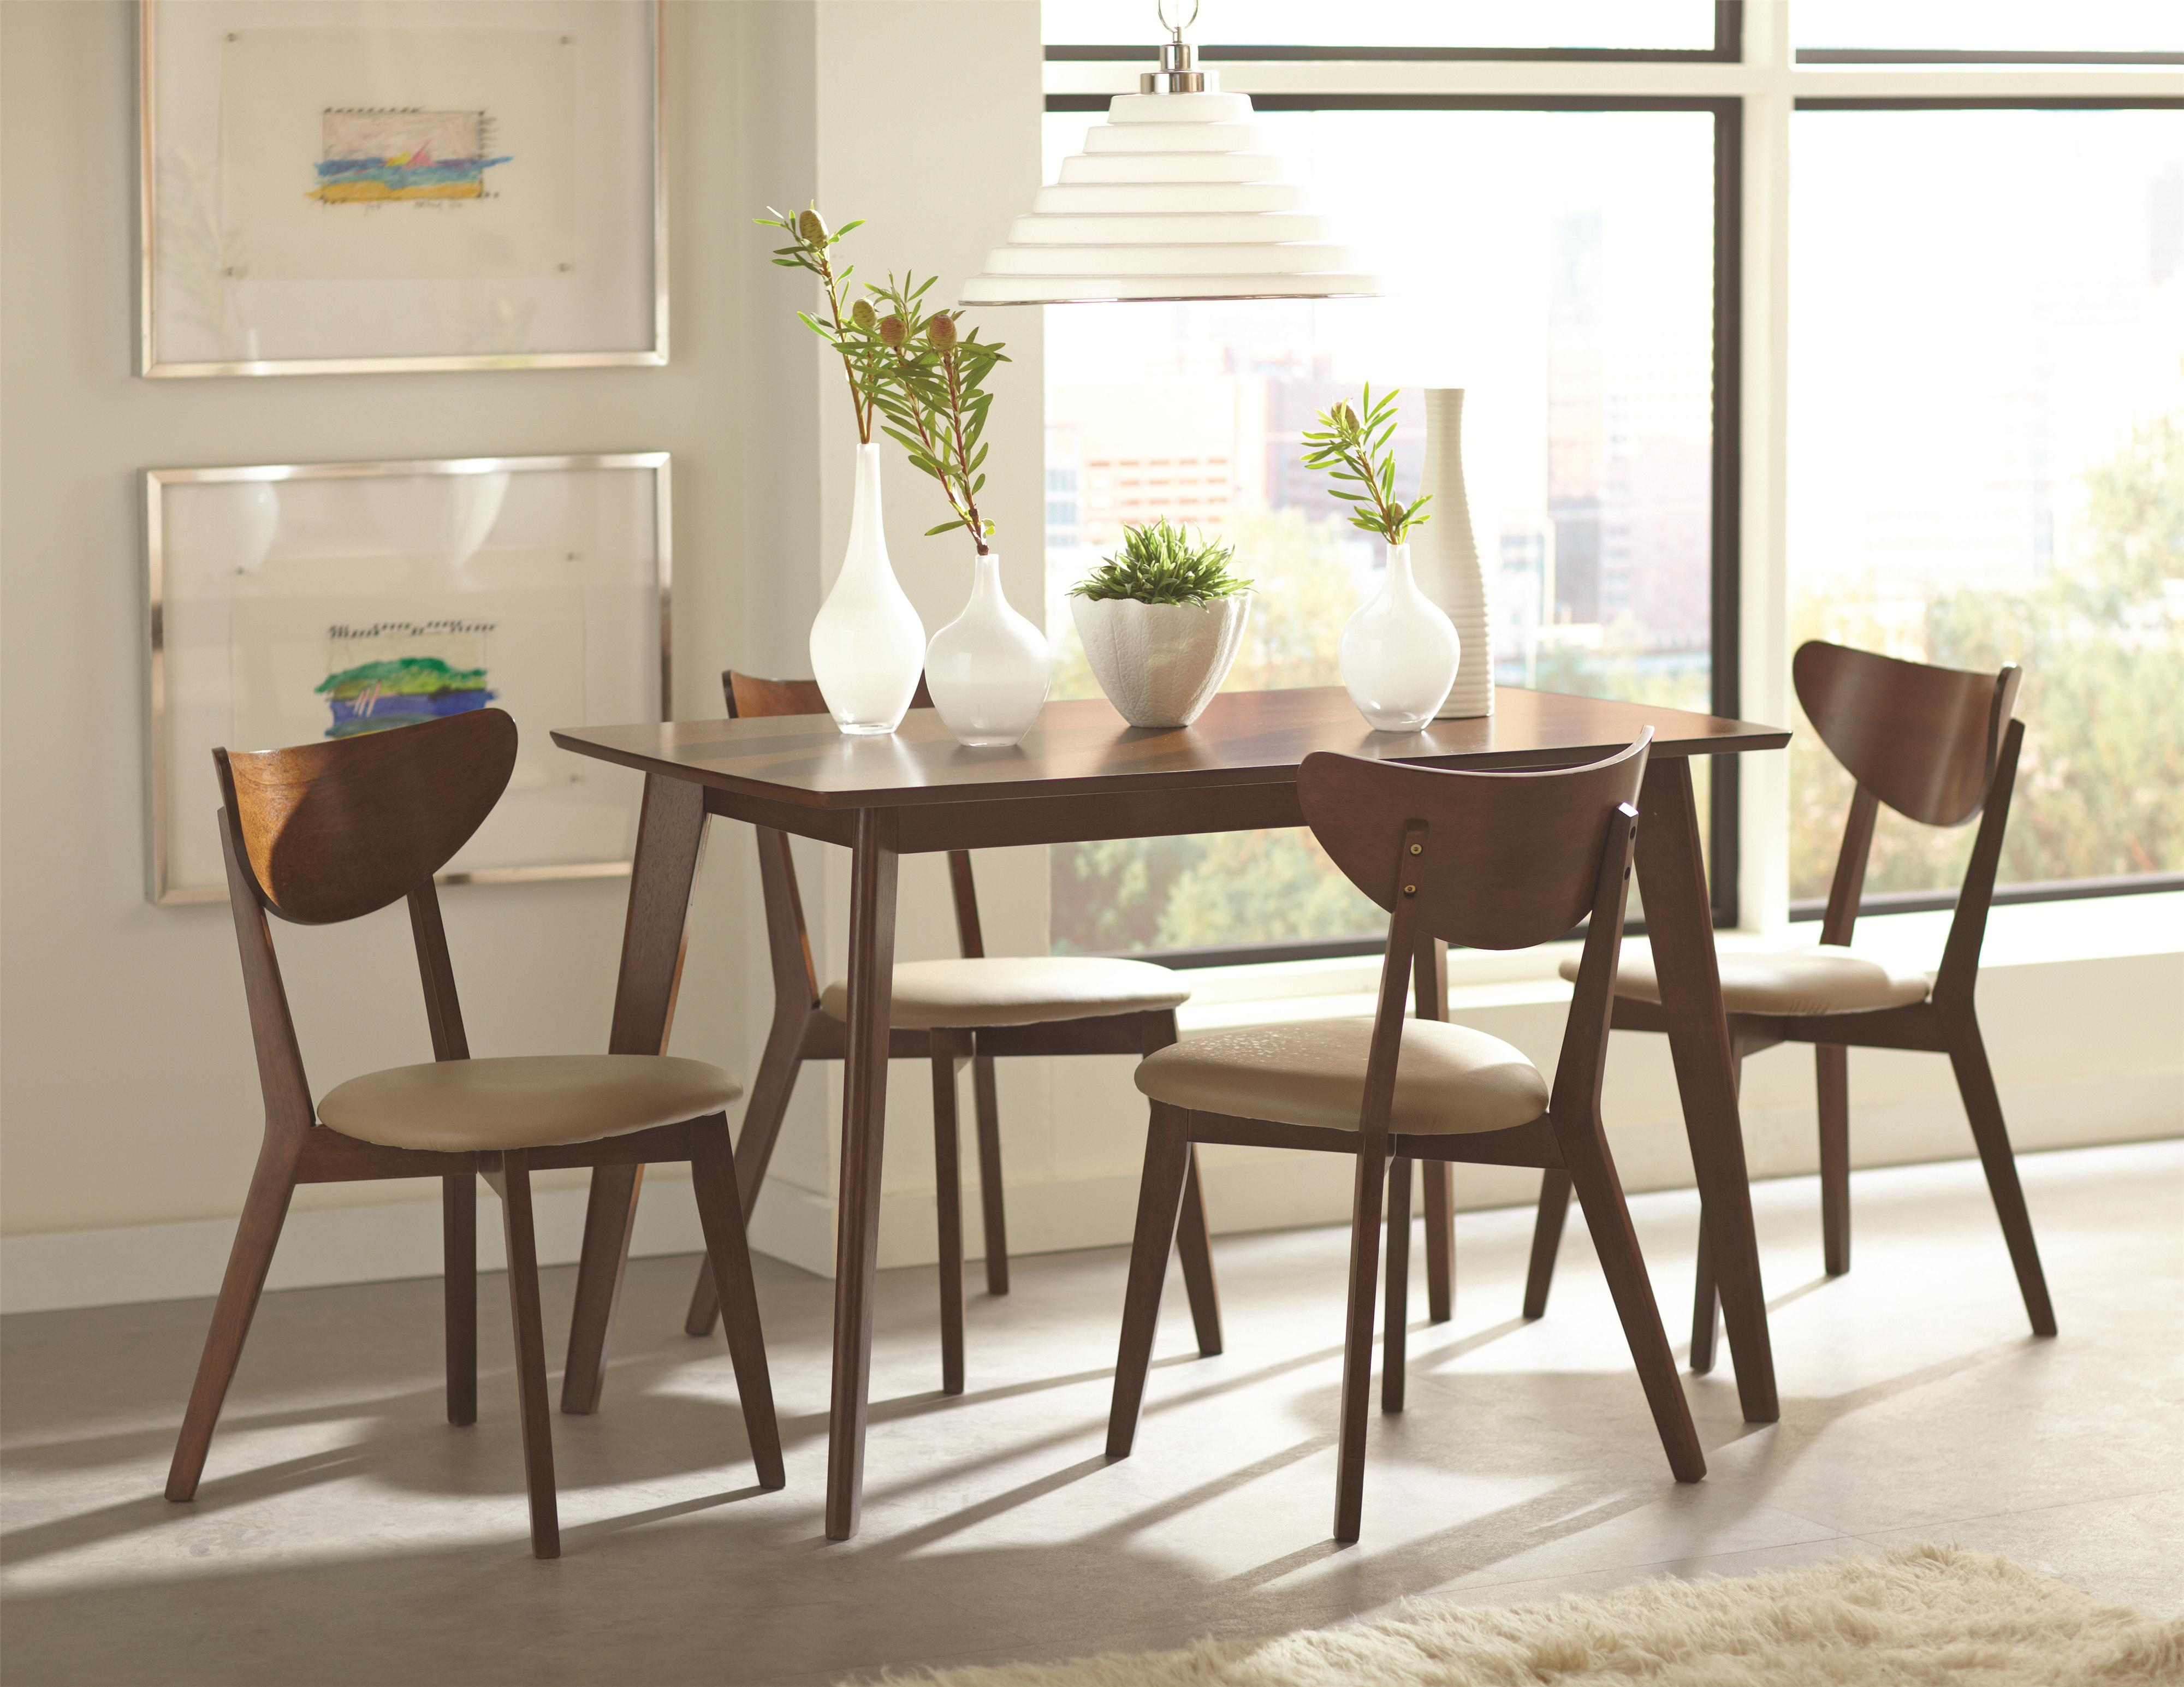 retro dining room table and chairs bedroom chair manufacturers coaster kersey 103061 brown mid century set